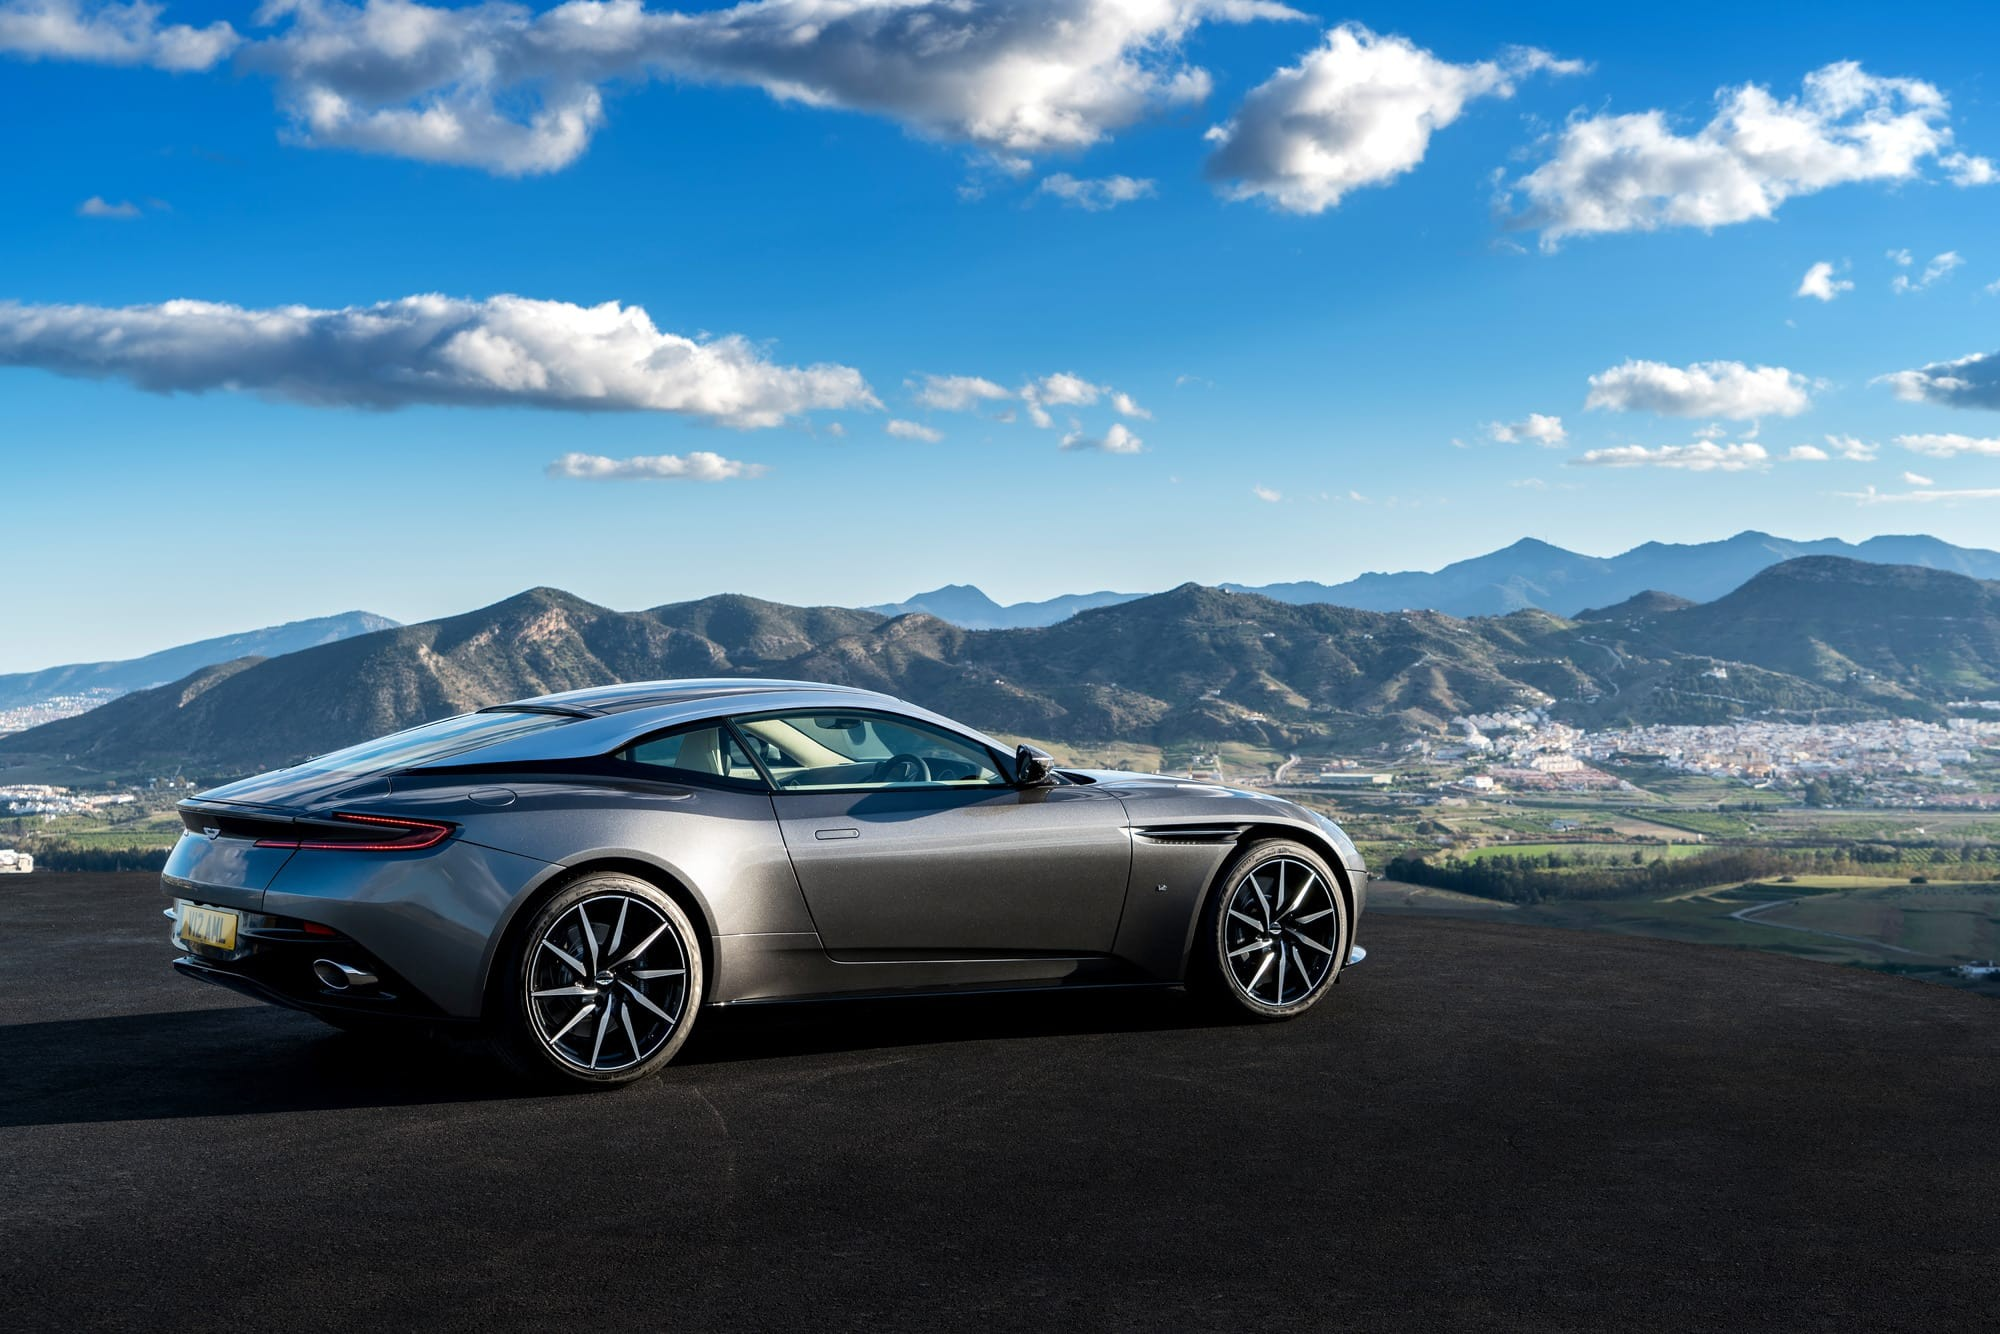 the aston martin db11 receives 5 star ratings from both autocar